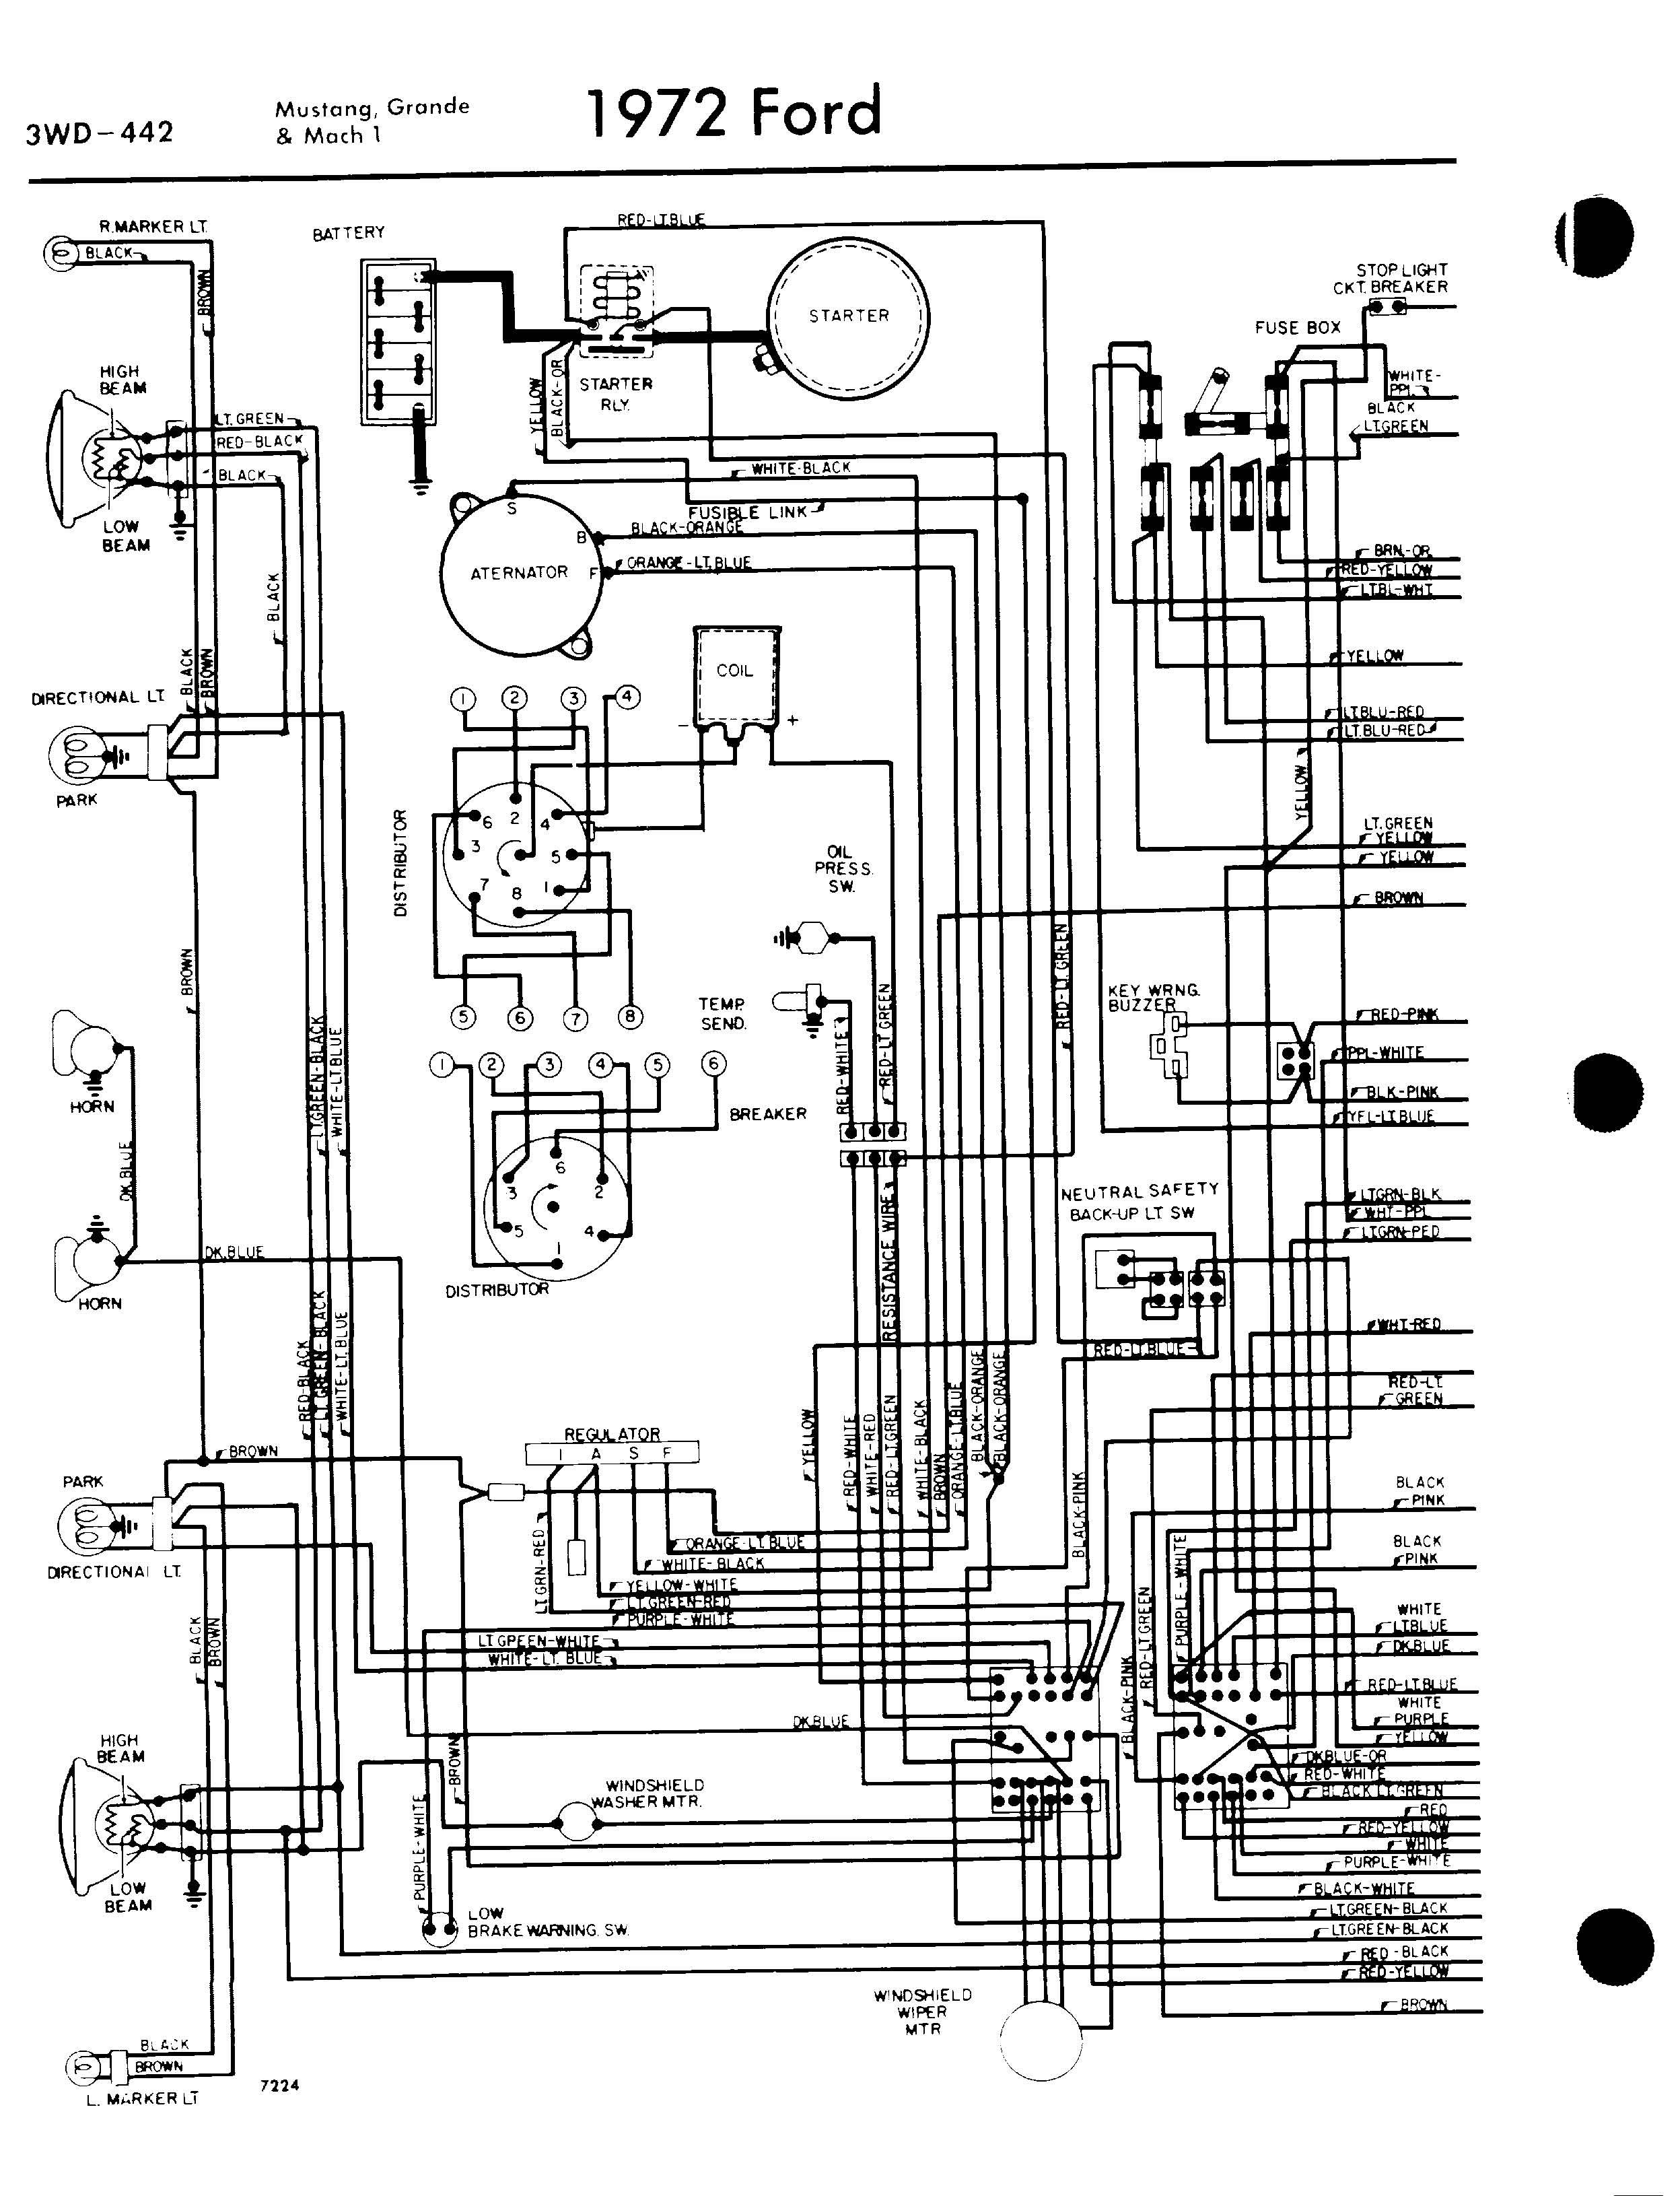 1969 ford mustang wiring diagrams wiring schematic diagram Ford Alternator Regulator Wiring ford mustang wiring harness diagram wiring block diagram mustang alternator wiring diagram ford mustang wiring wiring